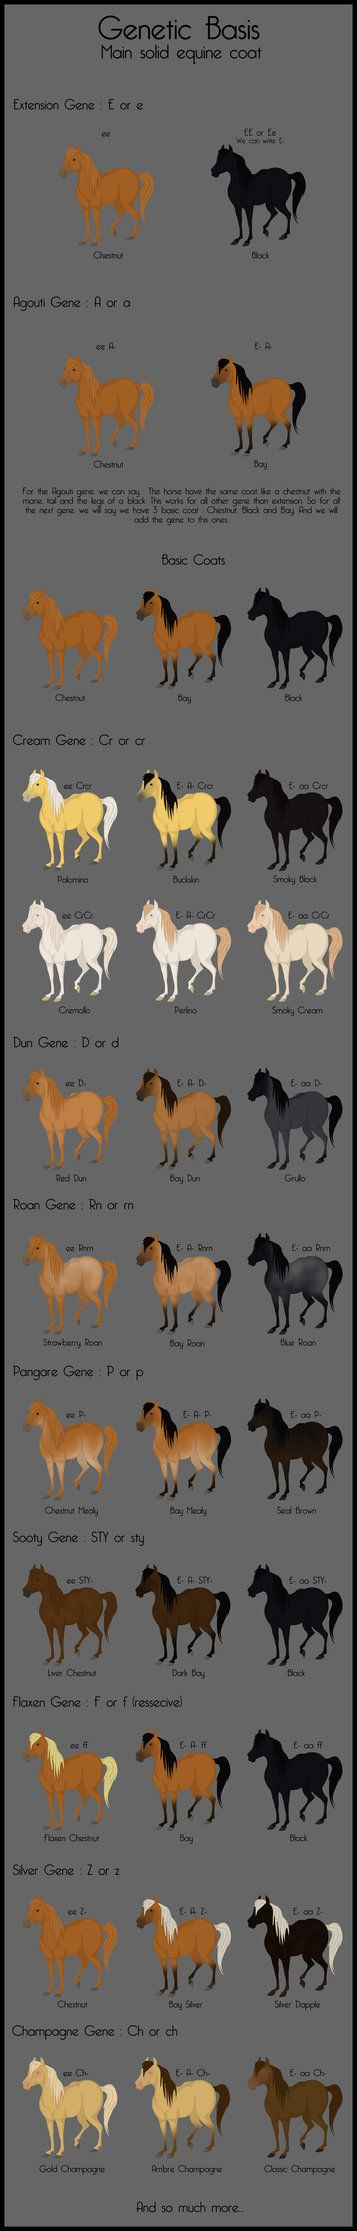 Deviantart more collections like chestnut color genetics chart by deviantart more collections like chestnut color genetics chart by magicwindsstables nvjuhfo Choice Image